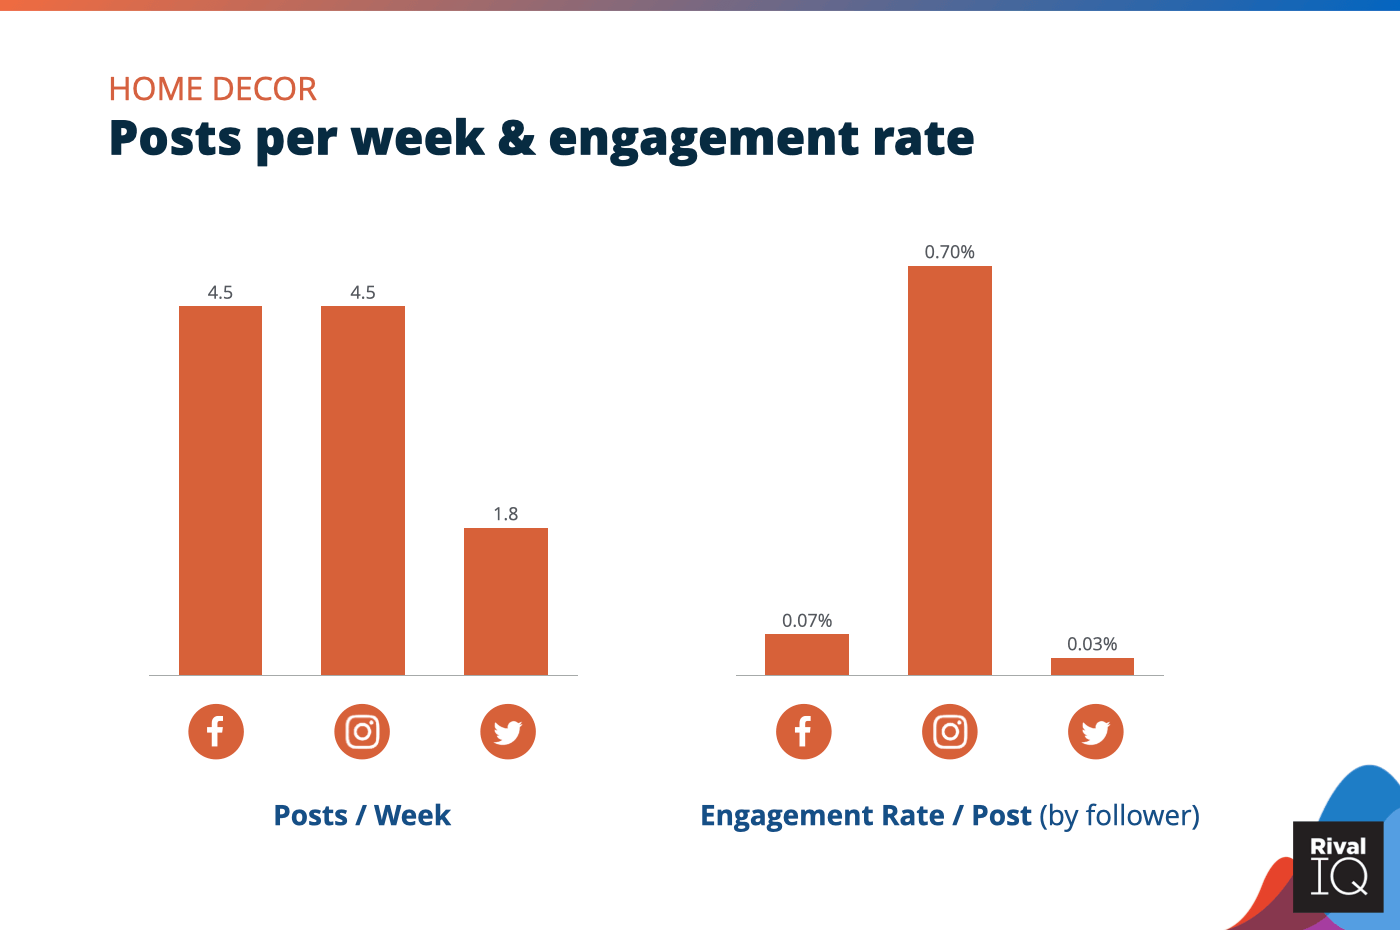 Chart of Posts per week and engagement rate per post across all channels, Home Decor